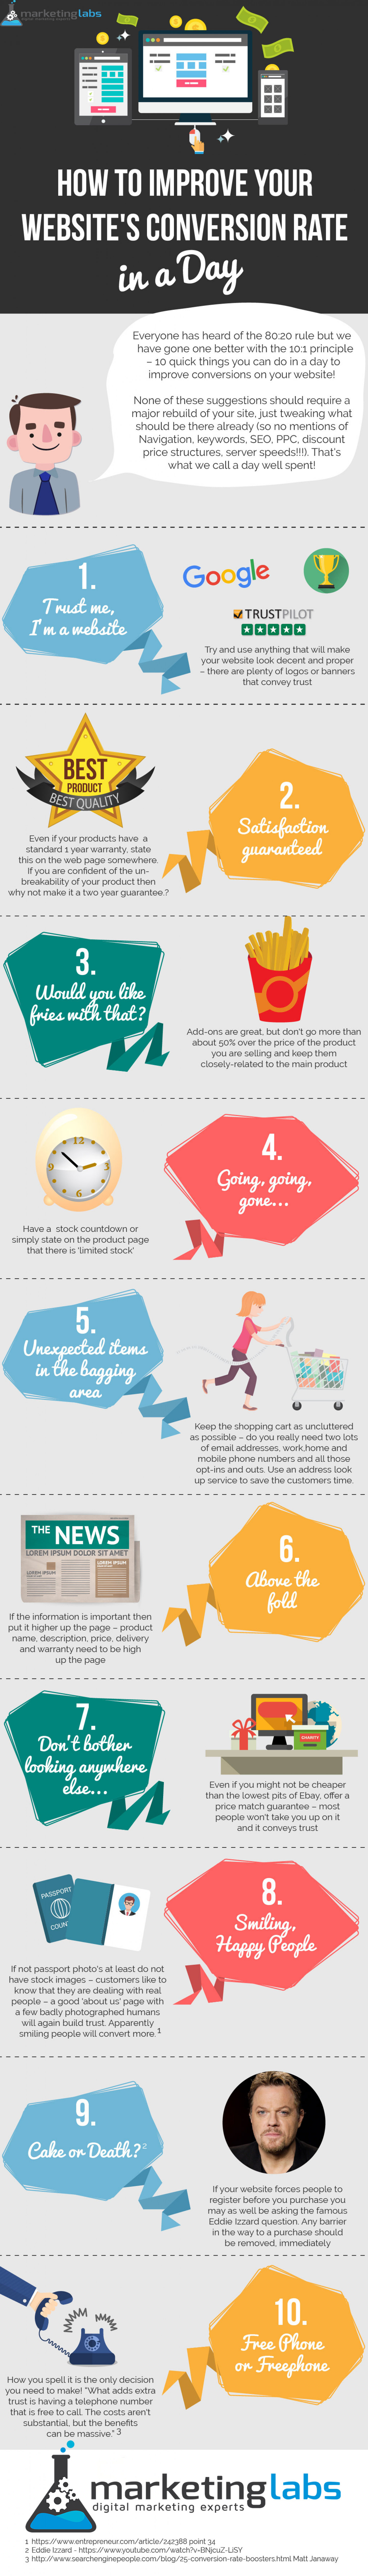 How to improve your website's conversion rate in a day Infographic